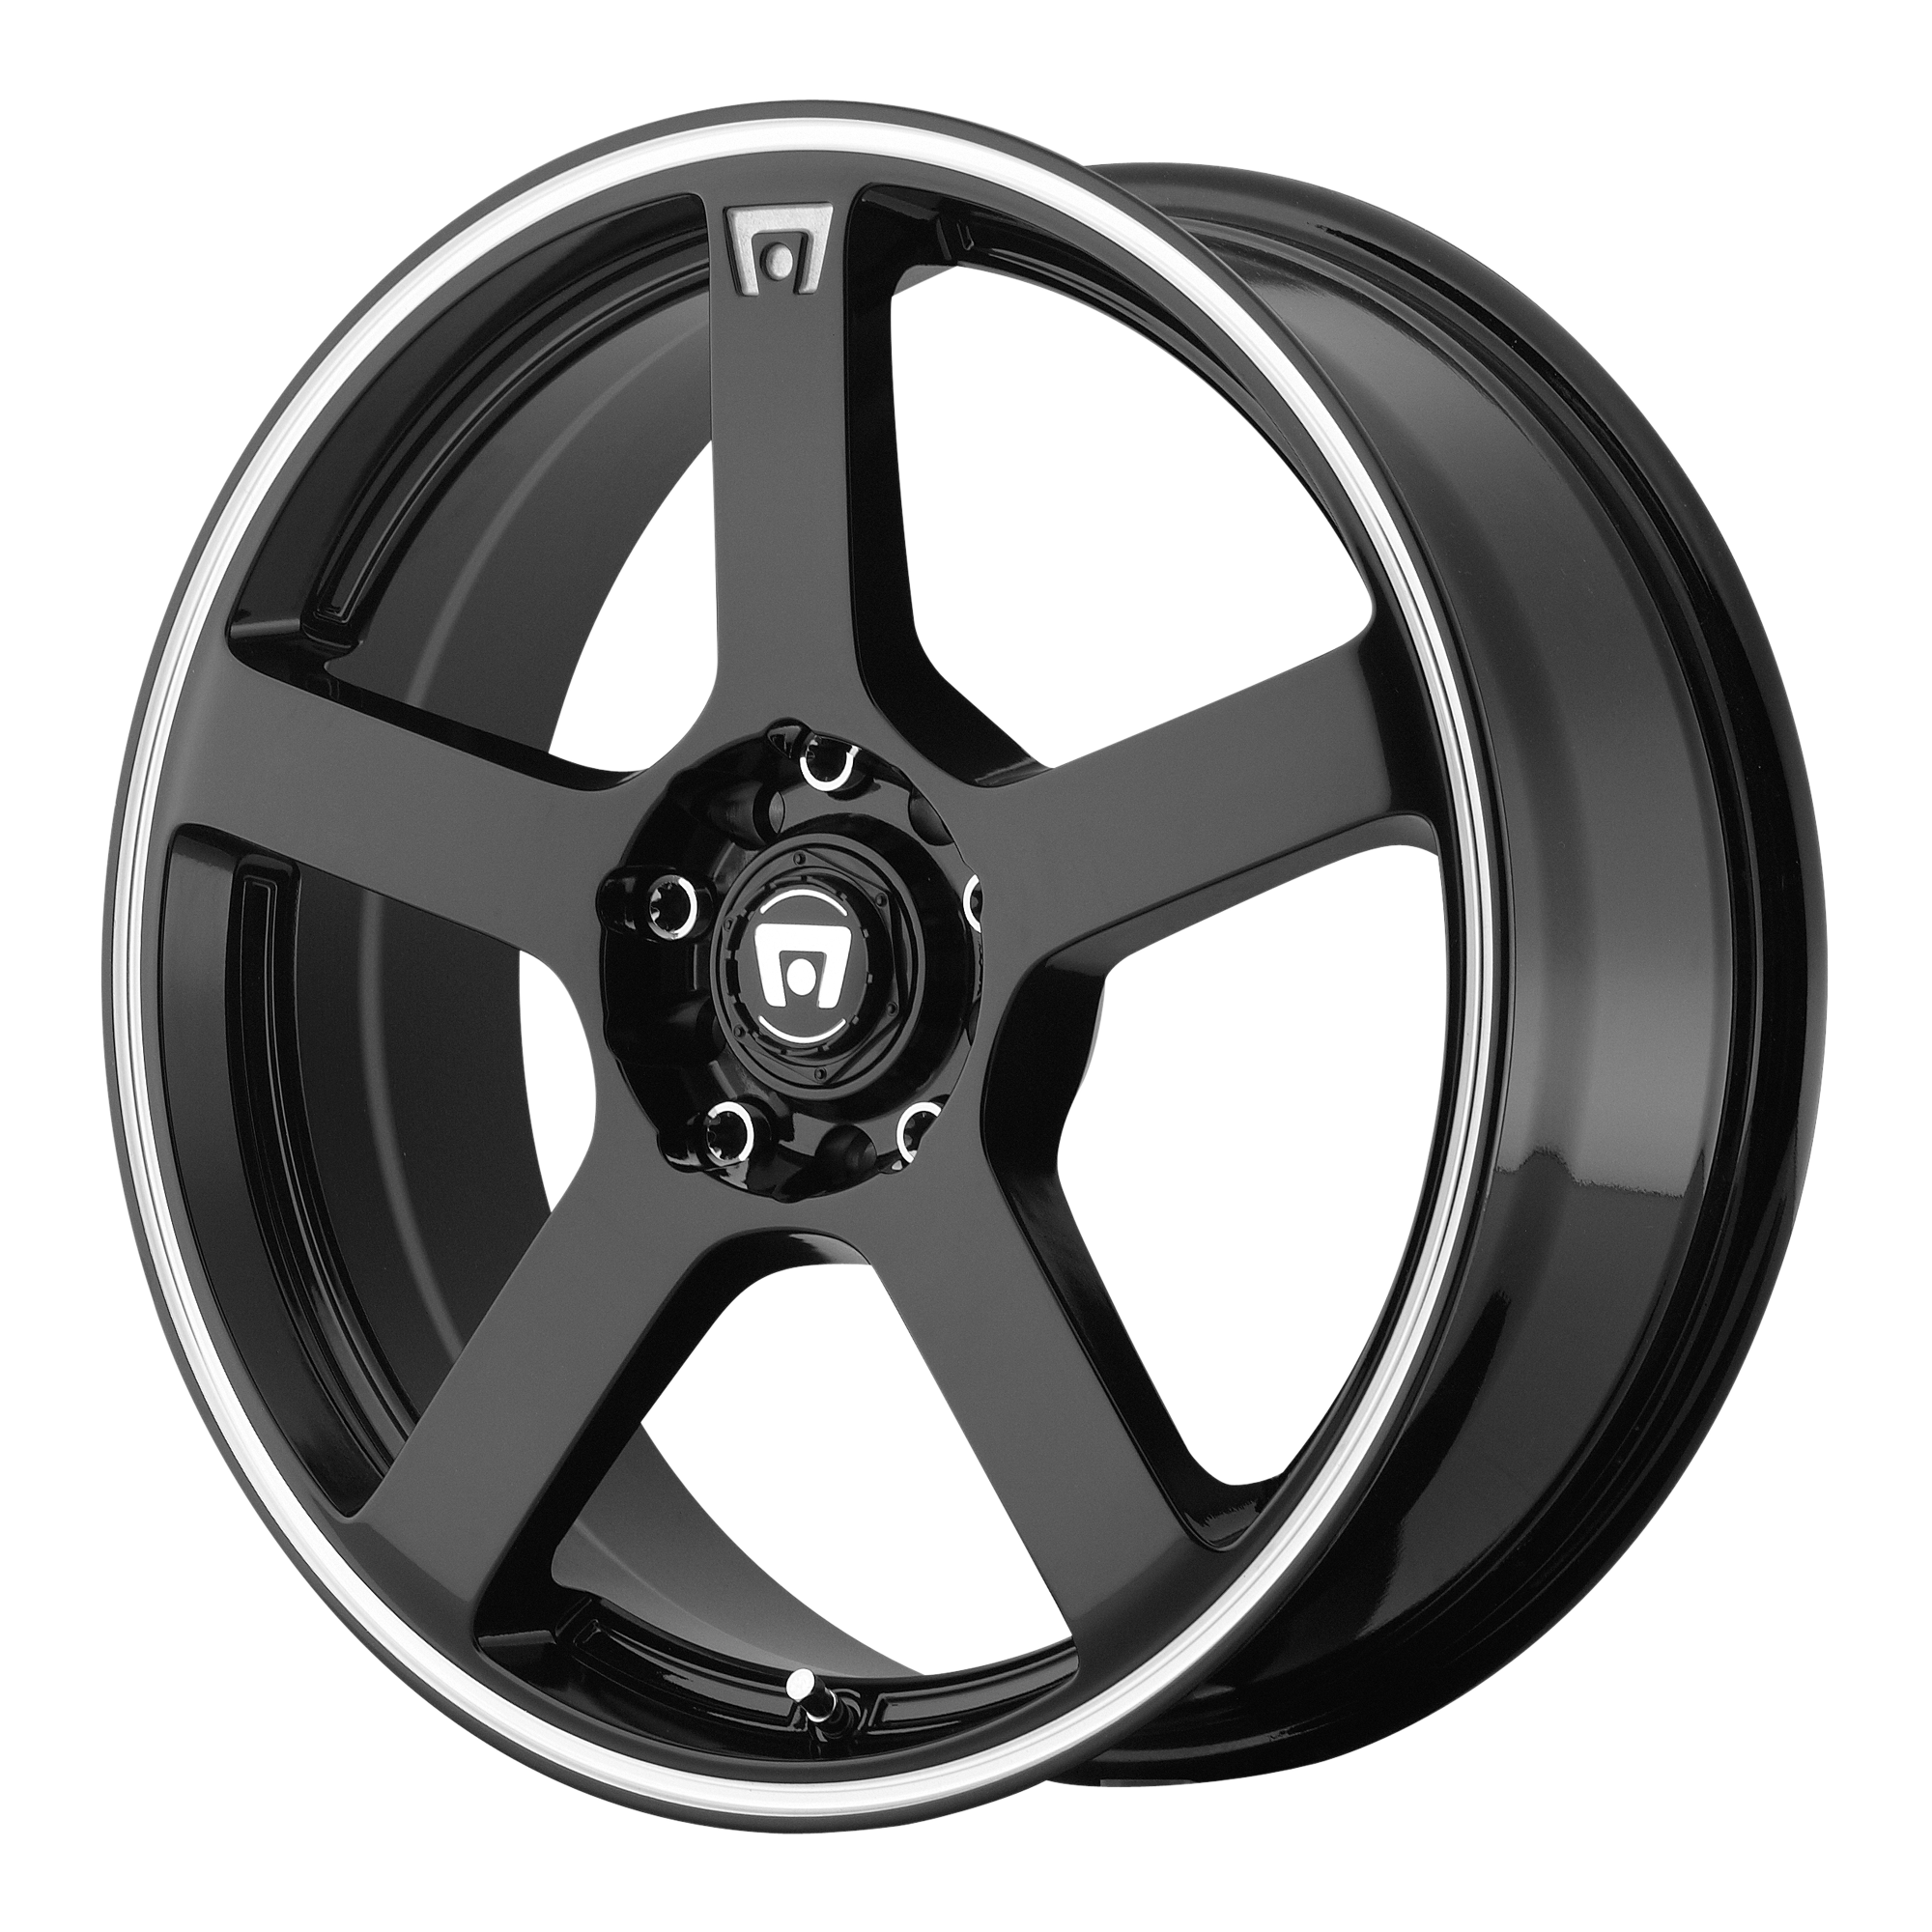 Motegi Racing Wheels MR116 Gloss Black w/ Machined Flange